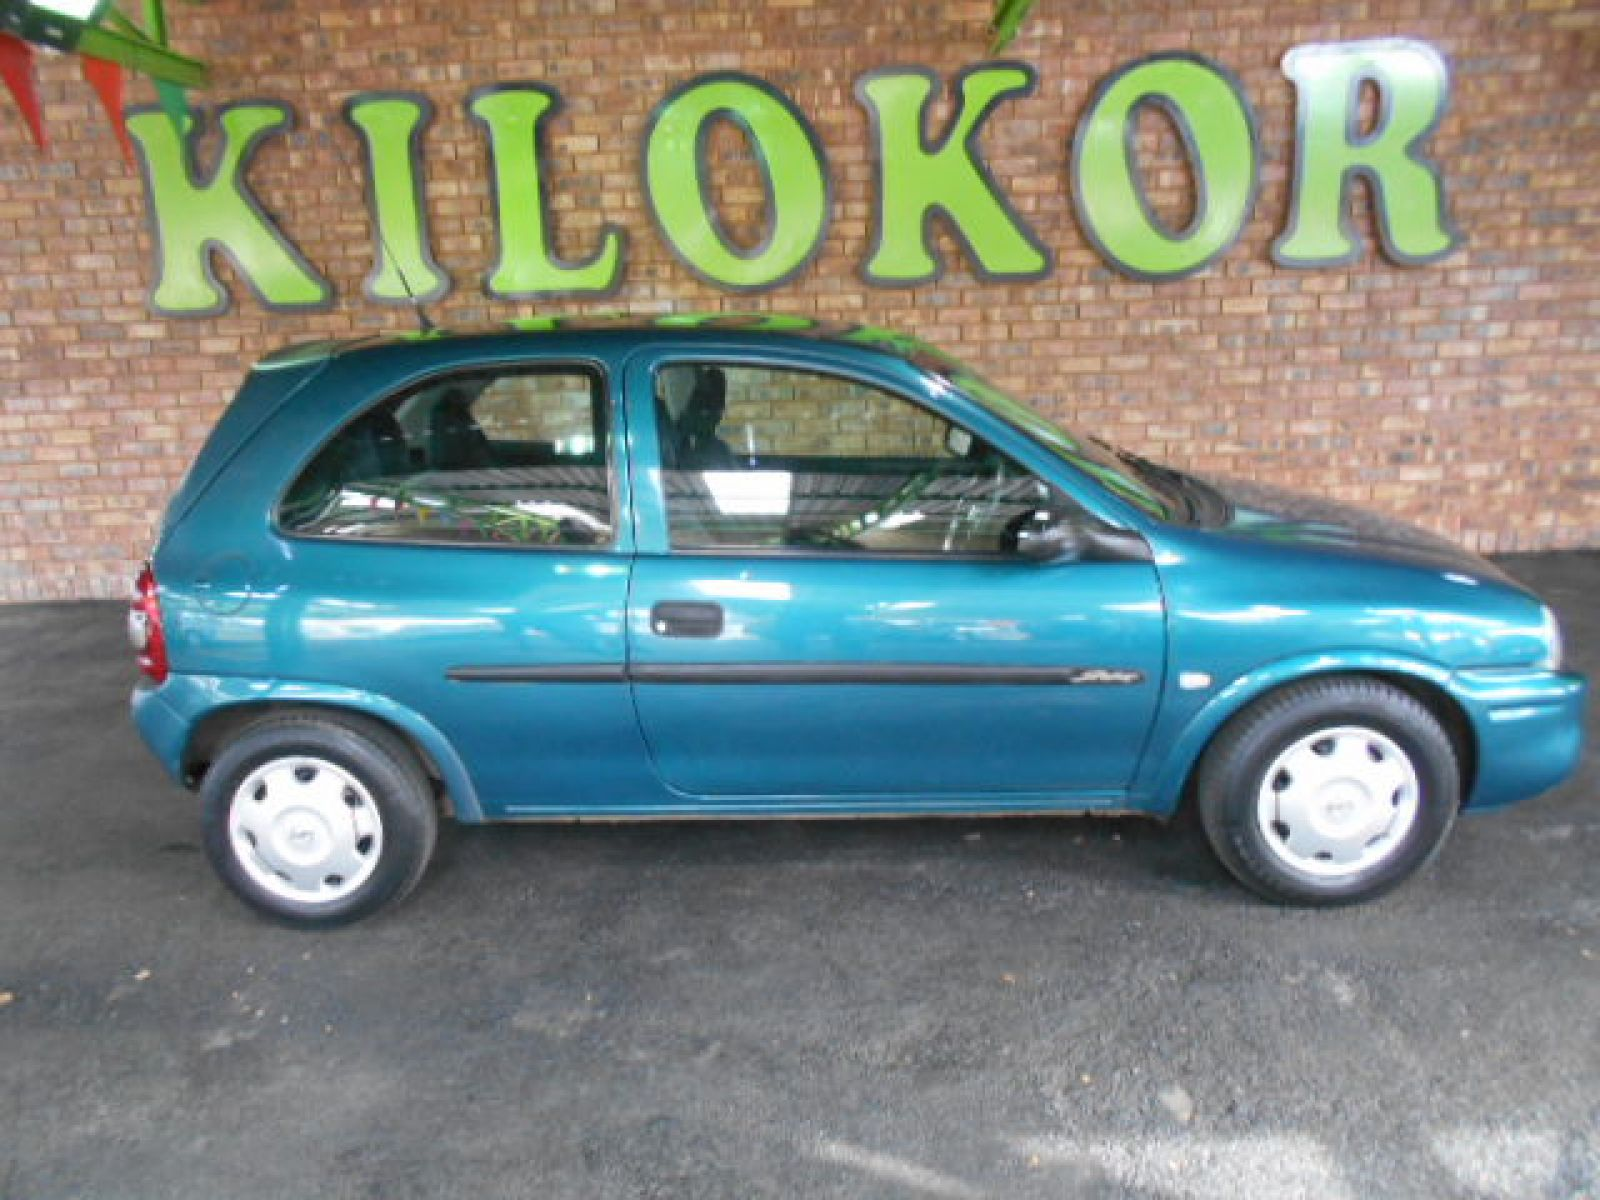 2001 opel corsa r 49 990 for sale kilokor motors. Black Bedroom Furniture Sets. Home Design Ideas